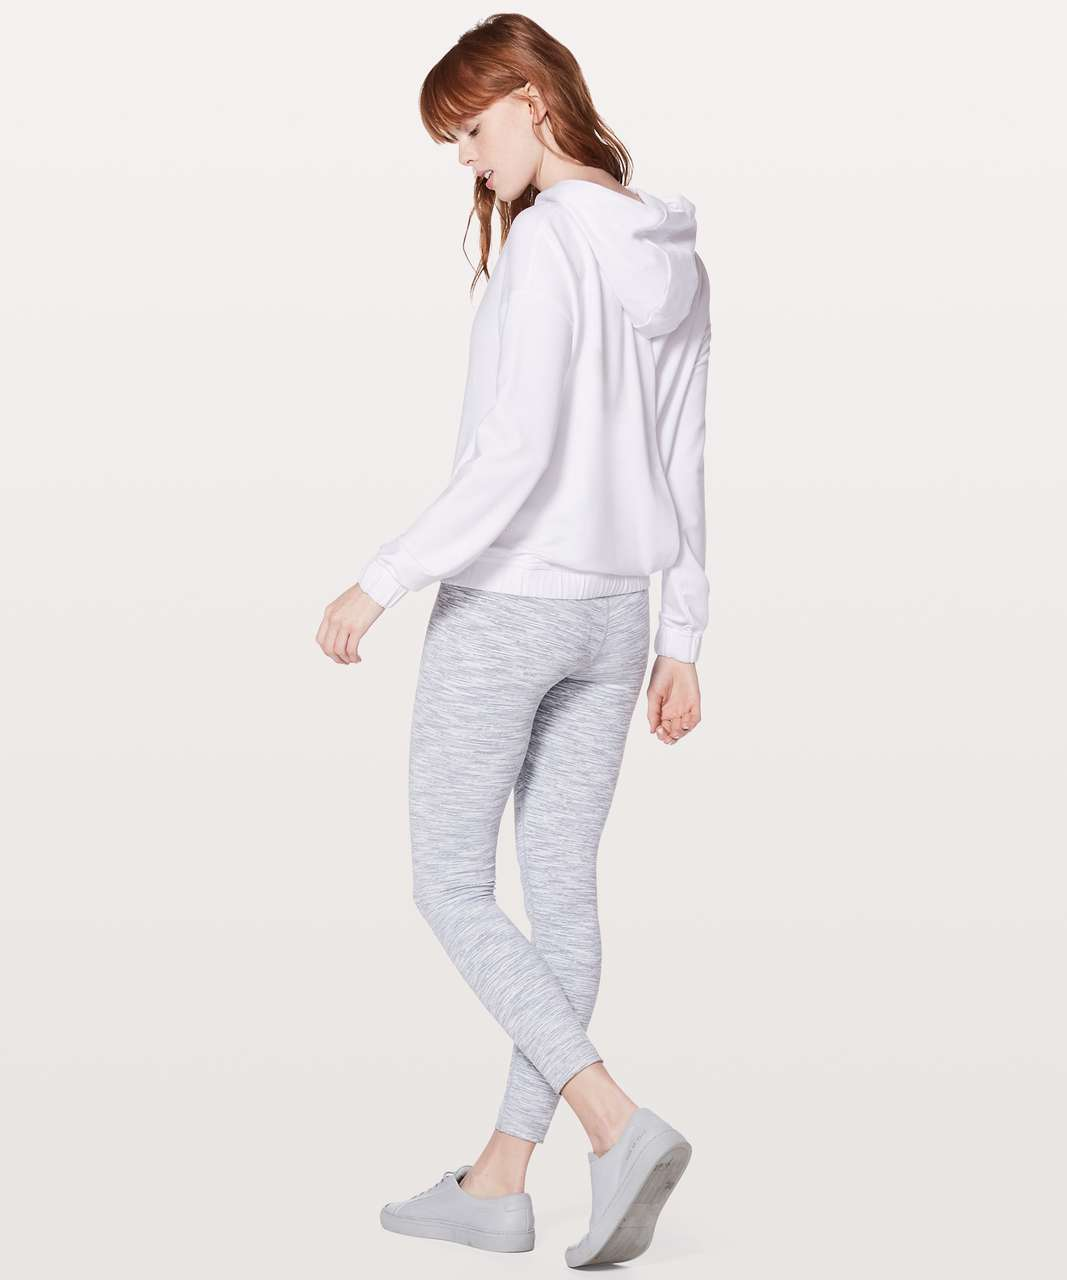 Lululemon Twisted & Tucked Pullover - White